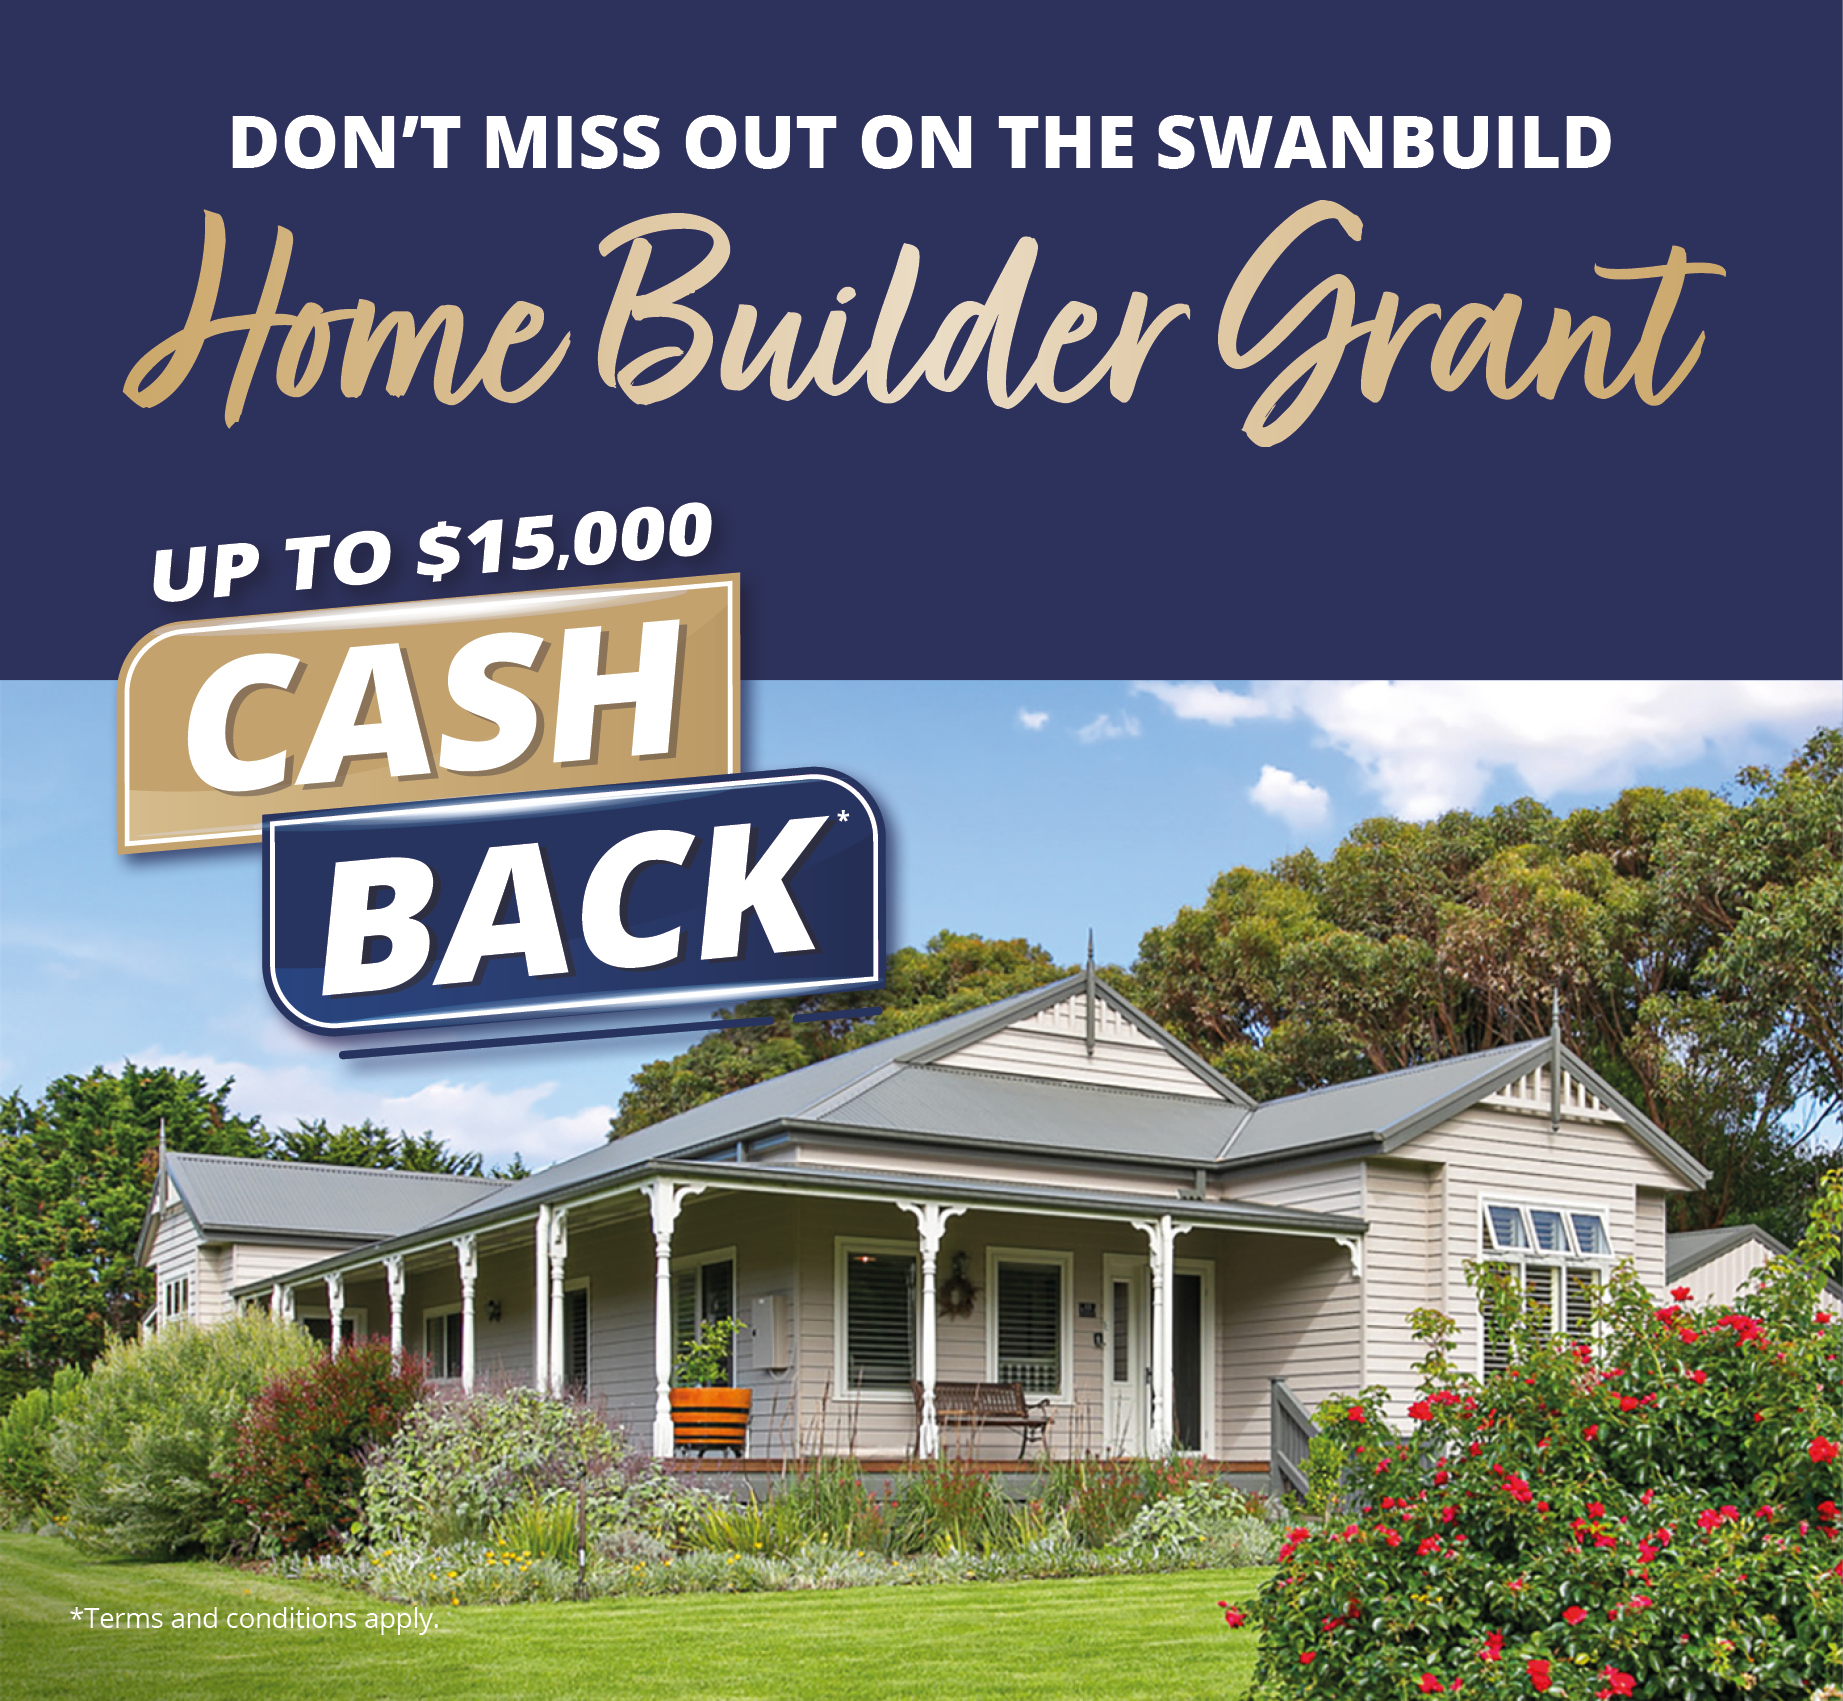 Swanbuild Home Builders Offer